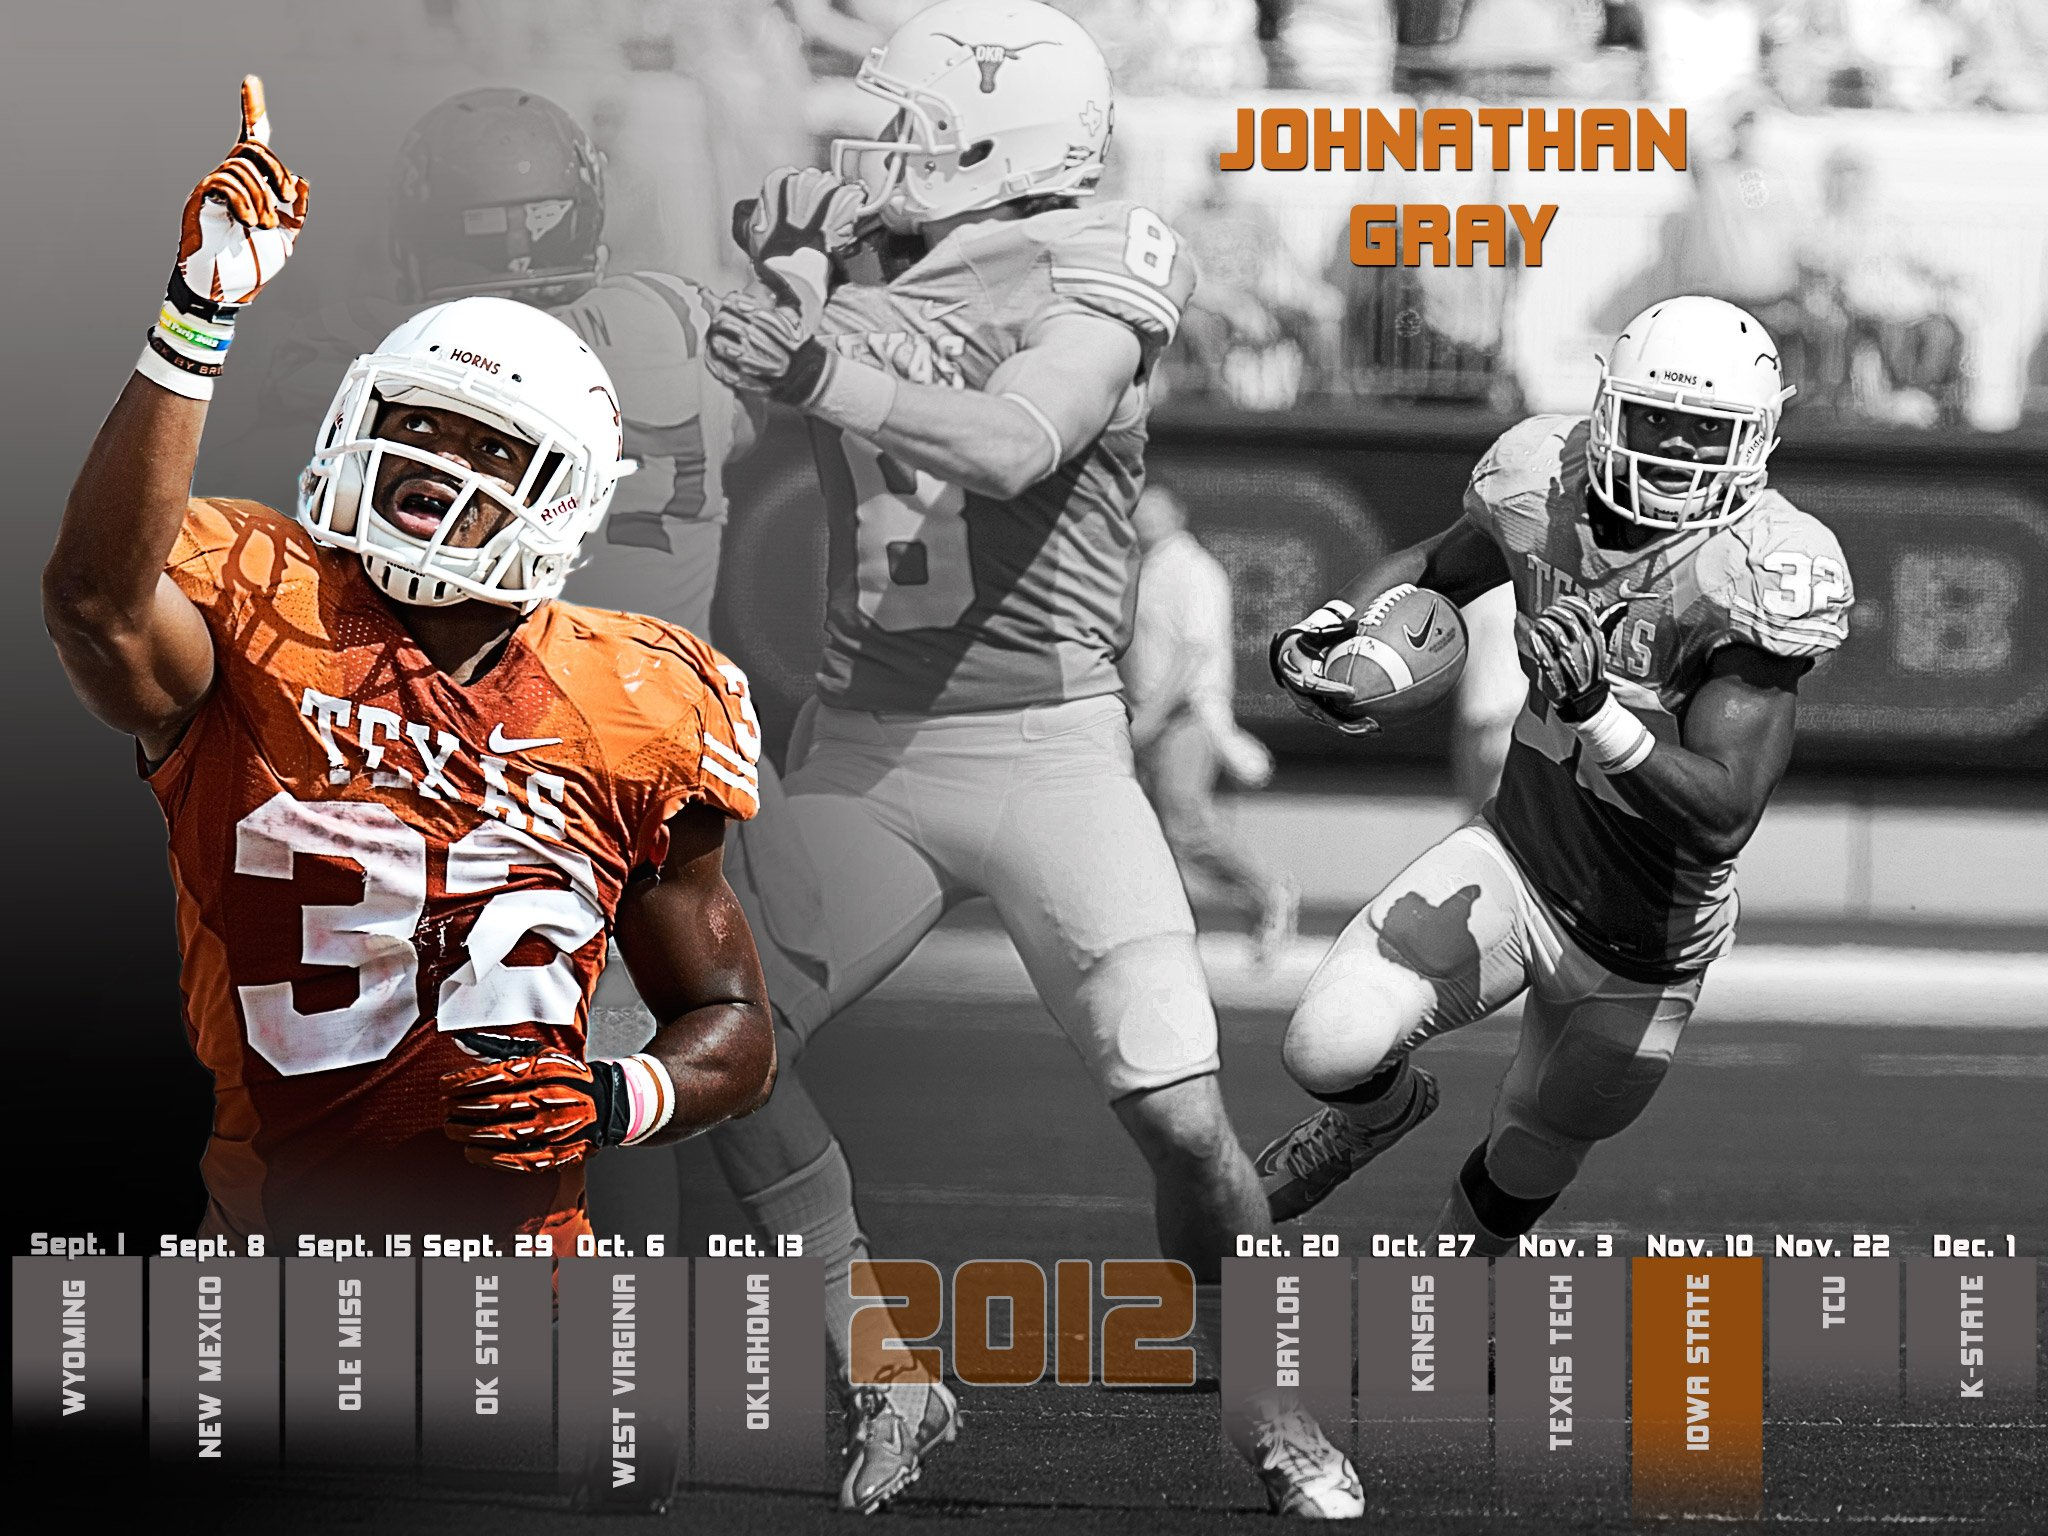 College Football Wallpapers: University Of Texas Football Wallpaper